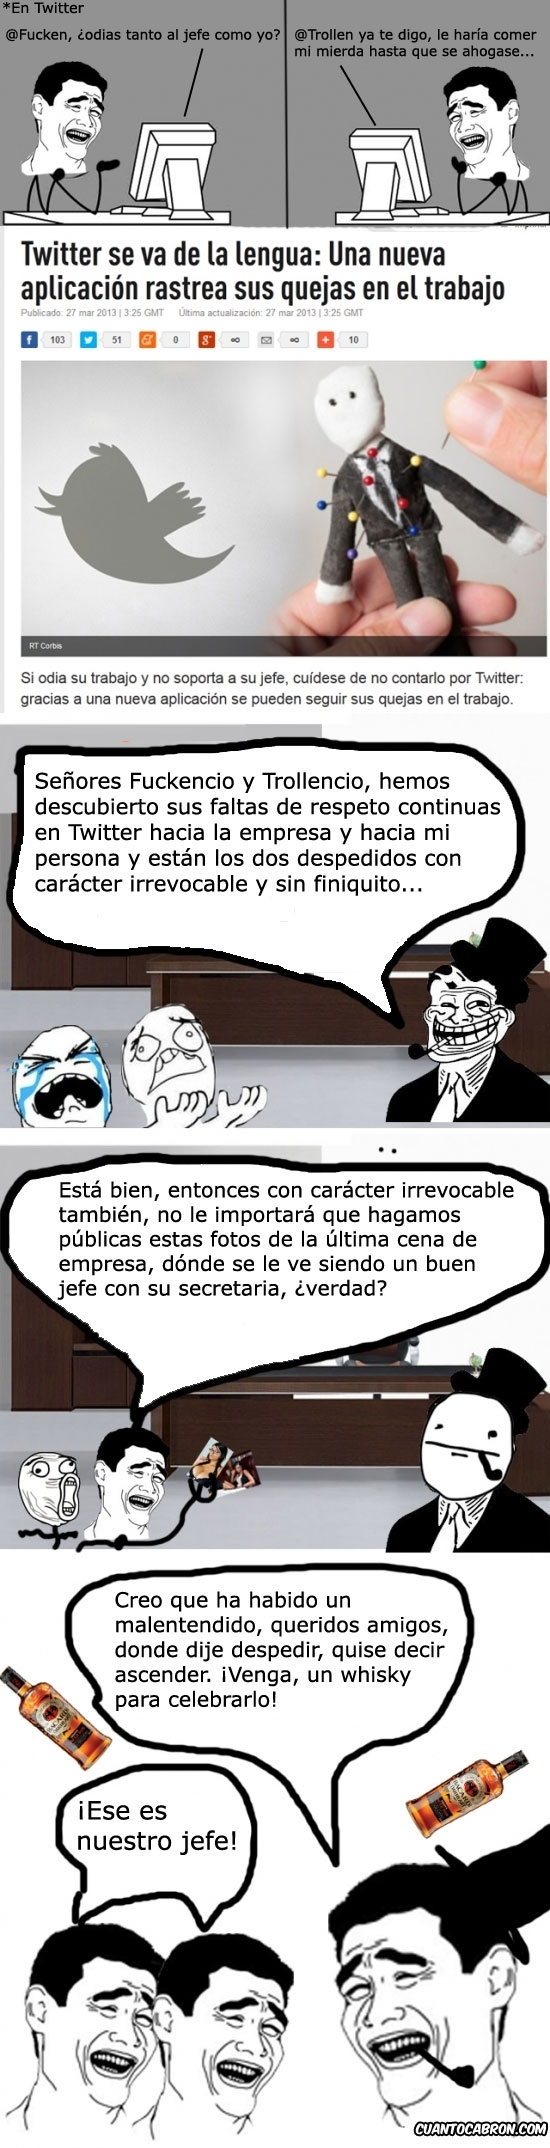 actualidad,chivato,jefe,noticia,poker face,quejas,trabajo,twitter,Yao Ming